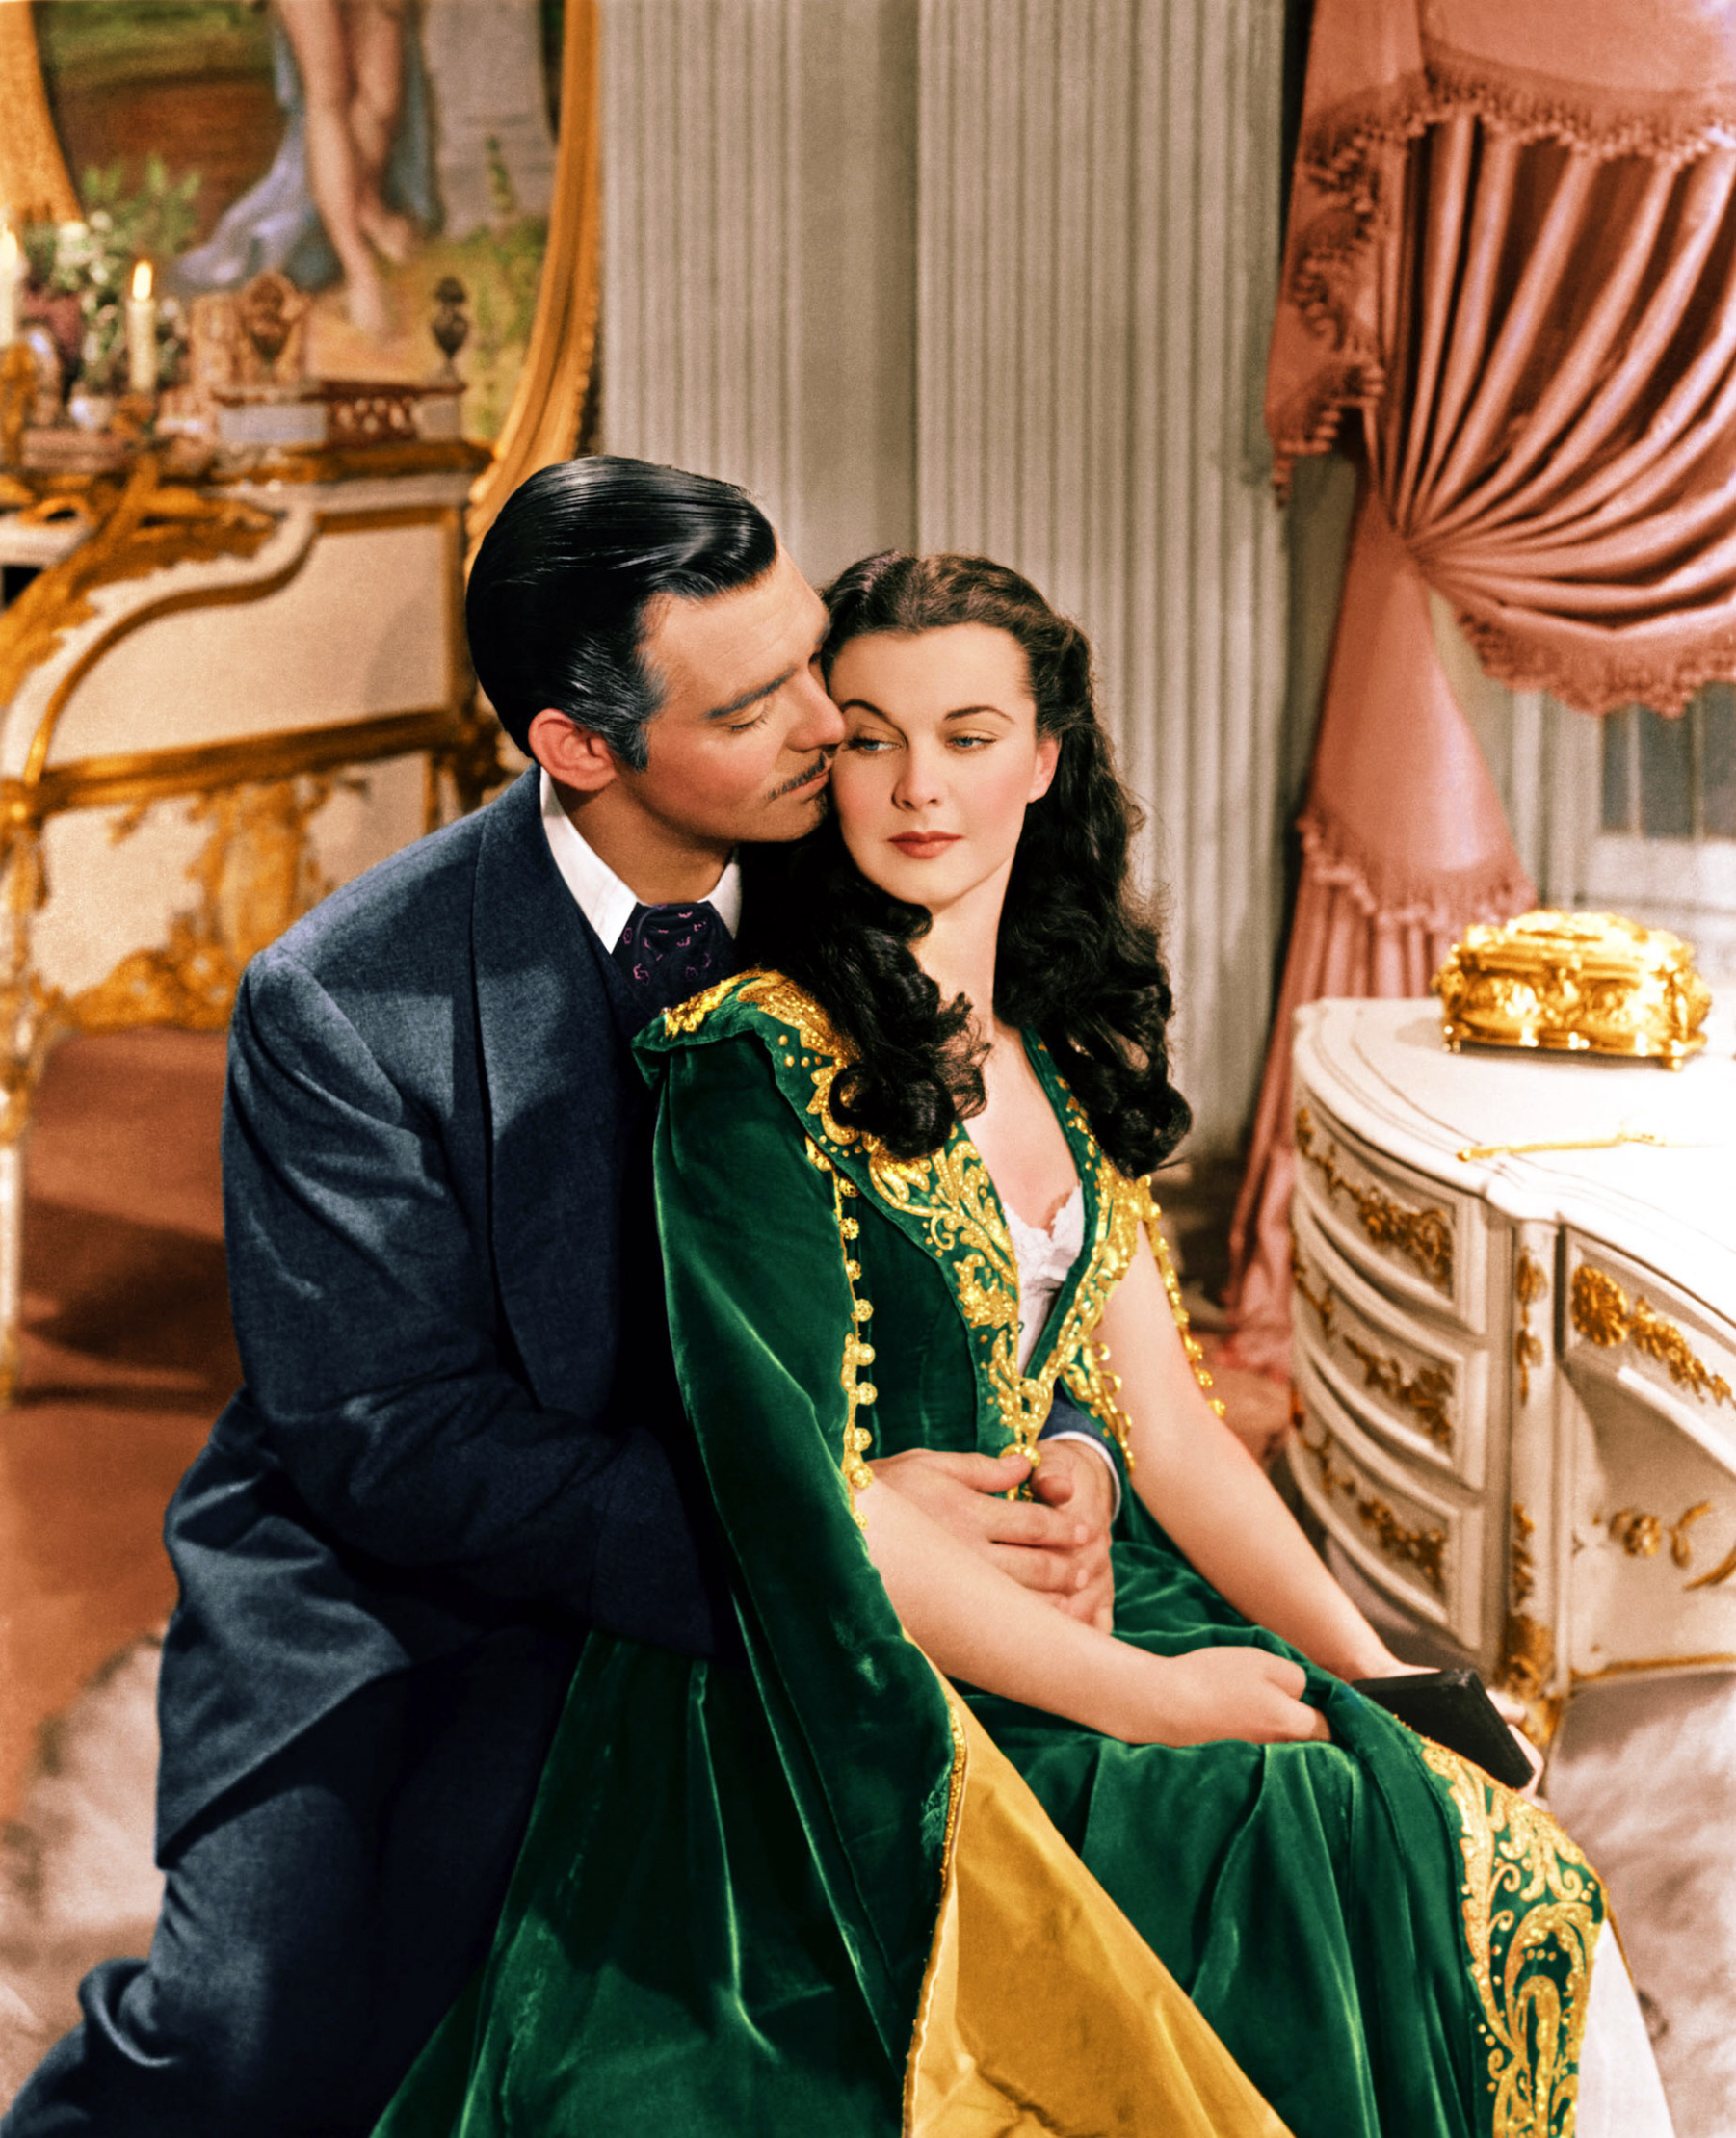 GONE WITH THE WIND, Clark Gable, Vivien Leigh, 1939,Image: 97903861, License: Rights-managed, Restrictions: For usage credit please use; Courtesy Everett Collection, Model Release: no, Credit line: Courtesy Everett Collection / Everett / Profimedia